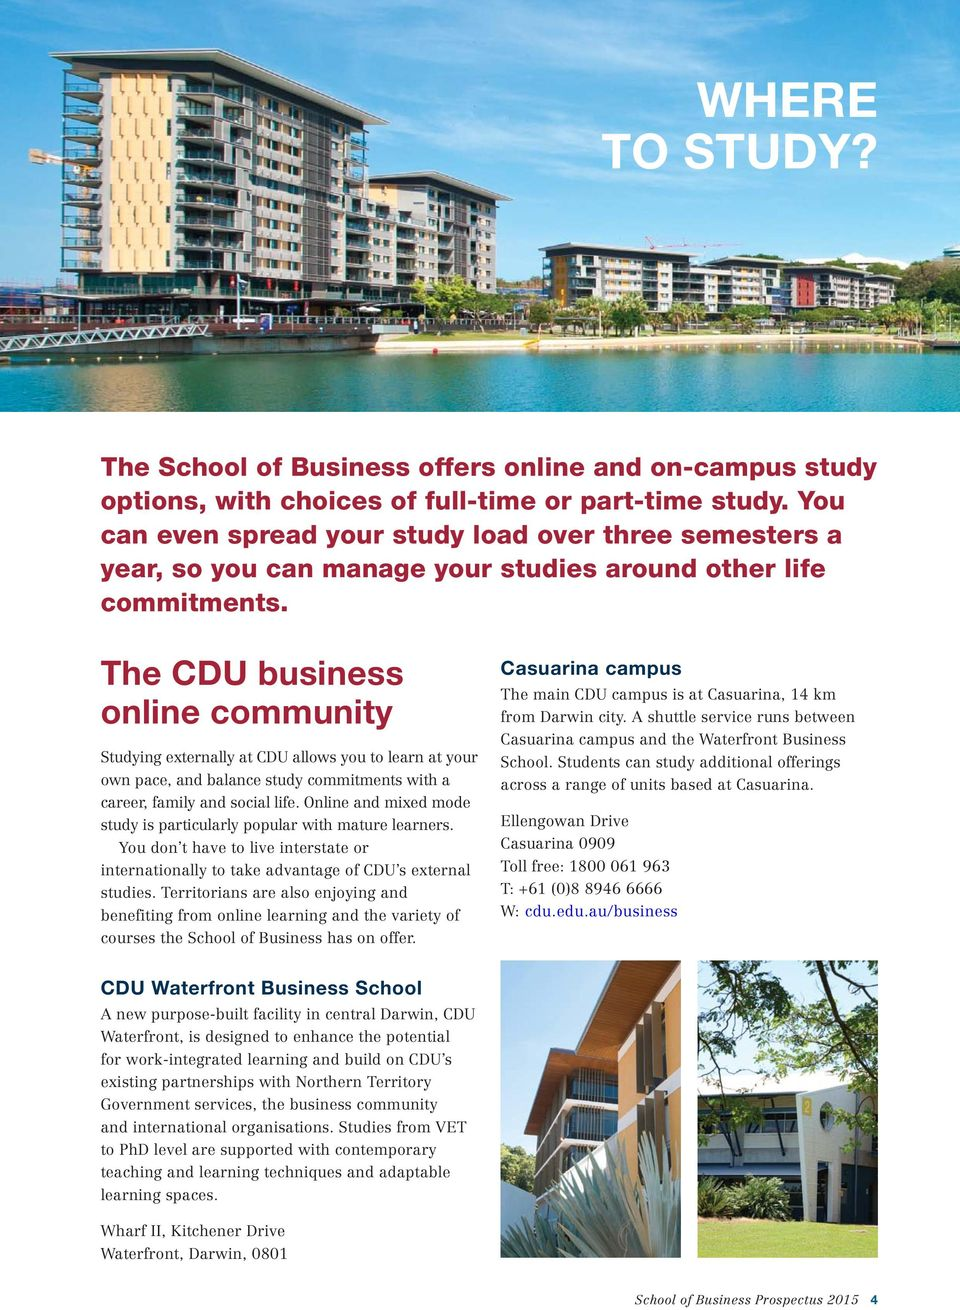 The CDU business online community Studying externally at CDU allows you to learn at your own pace, and balance study commitments with a career, family and social life.